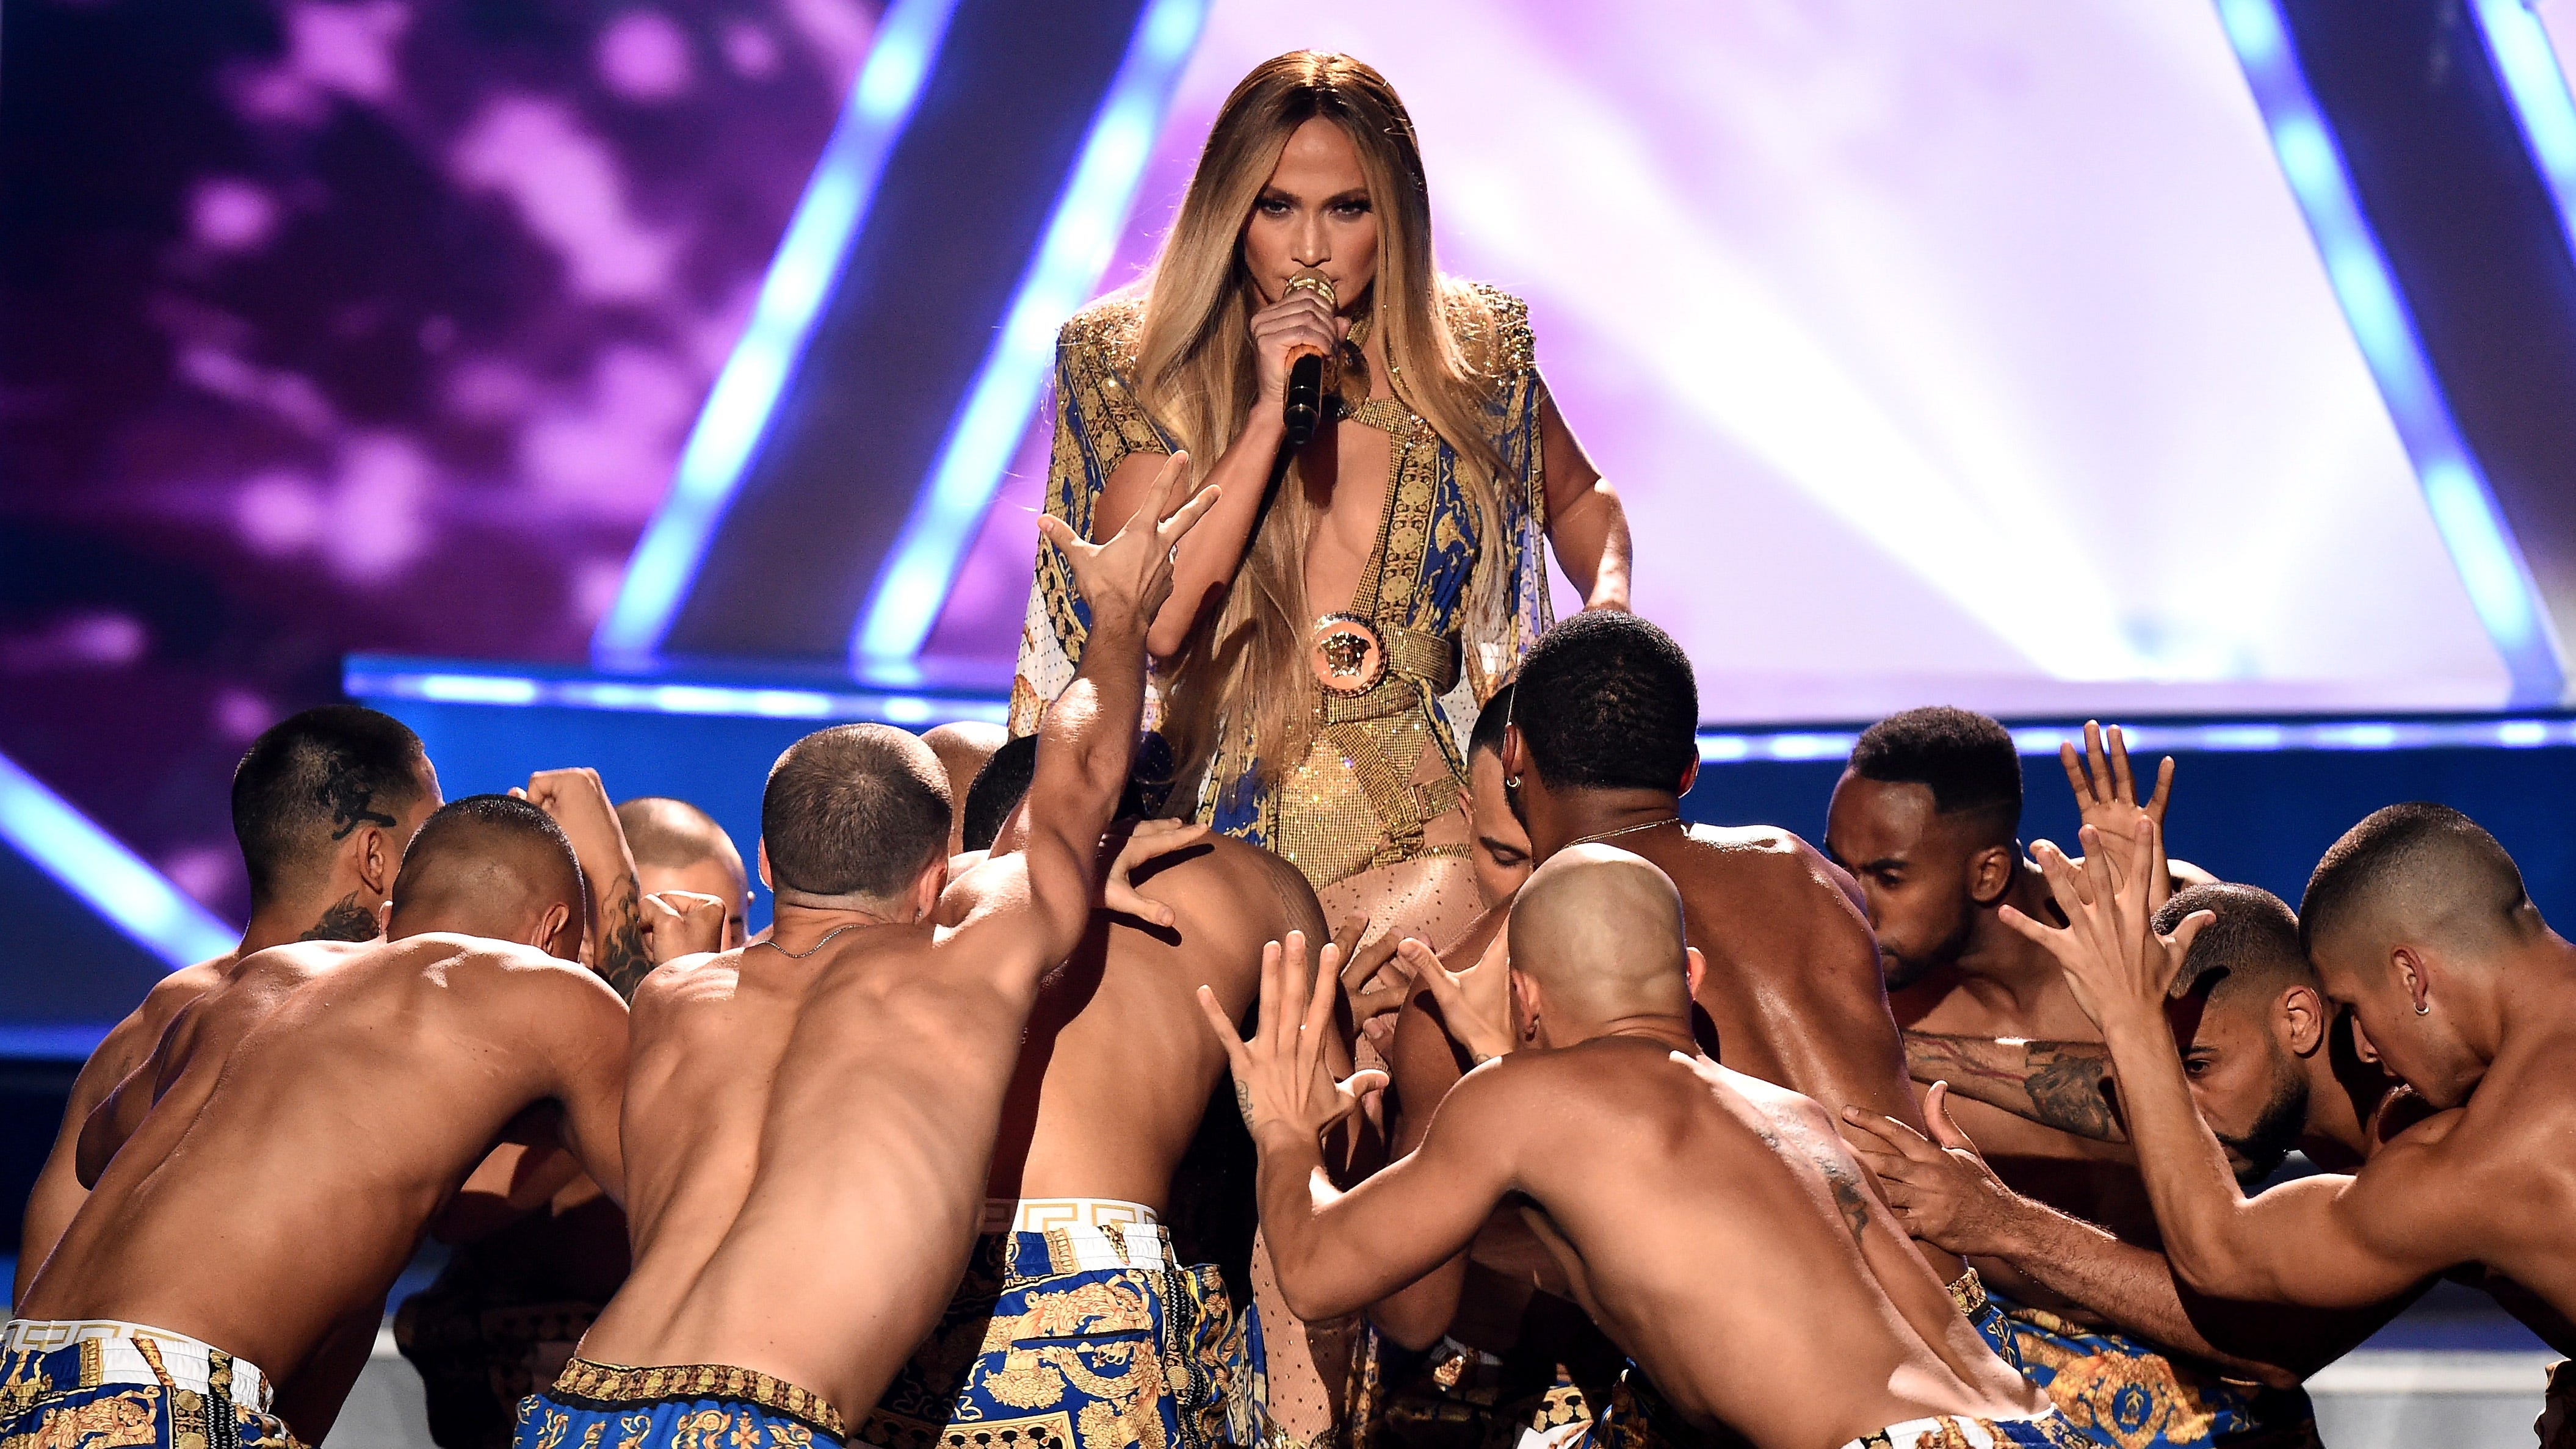 NEW YORK, NY - AUGUST 20:  Jennifer Lopez performs onstage during the 2018 MTV Video Music Awards at Radio City Music Hall on August 20, 2018 in New York City.  (Photo by Michael Loccisano/Getty Images for MTV) ORG XMIT: 775210297 ORIG FILE ID: 1020376974